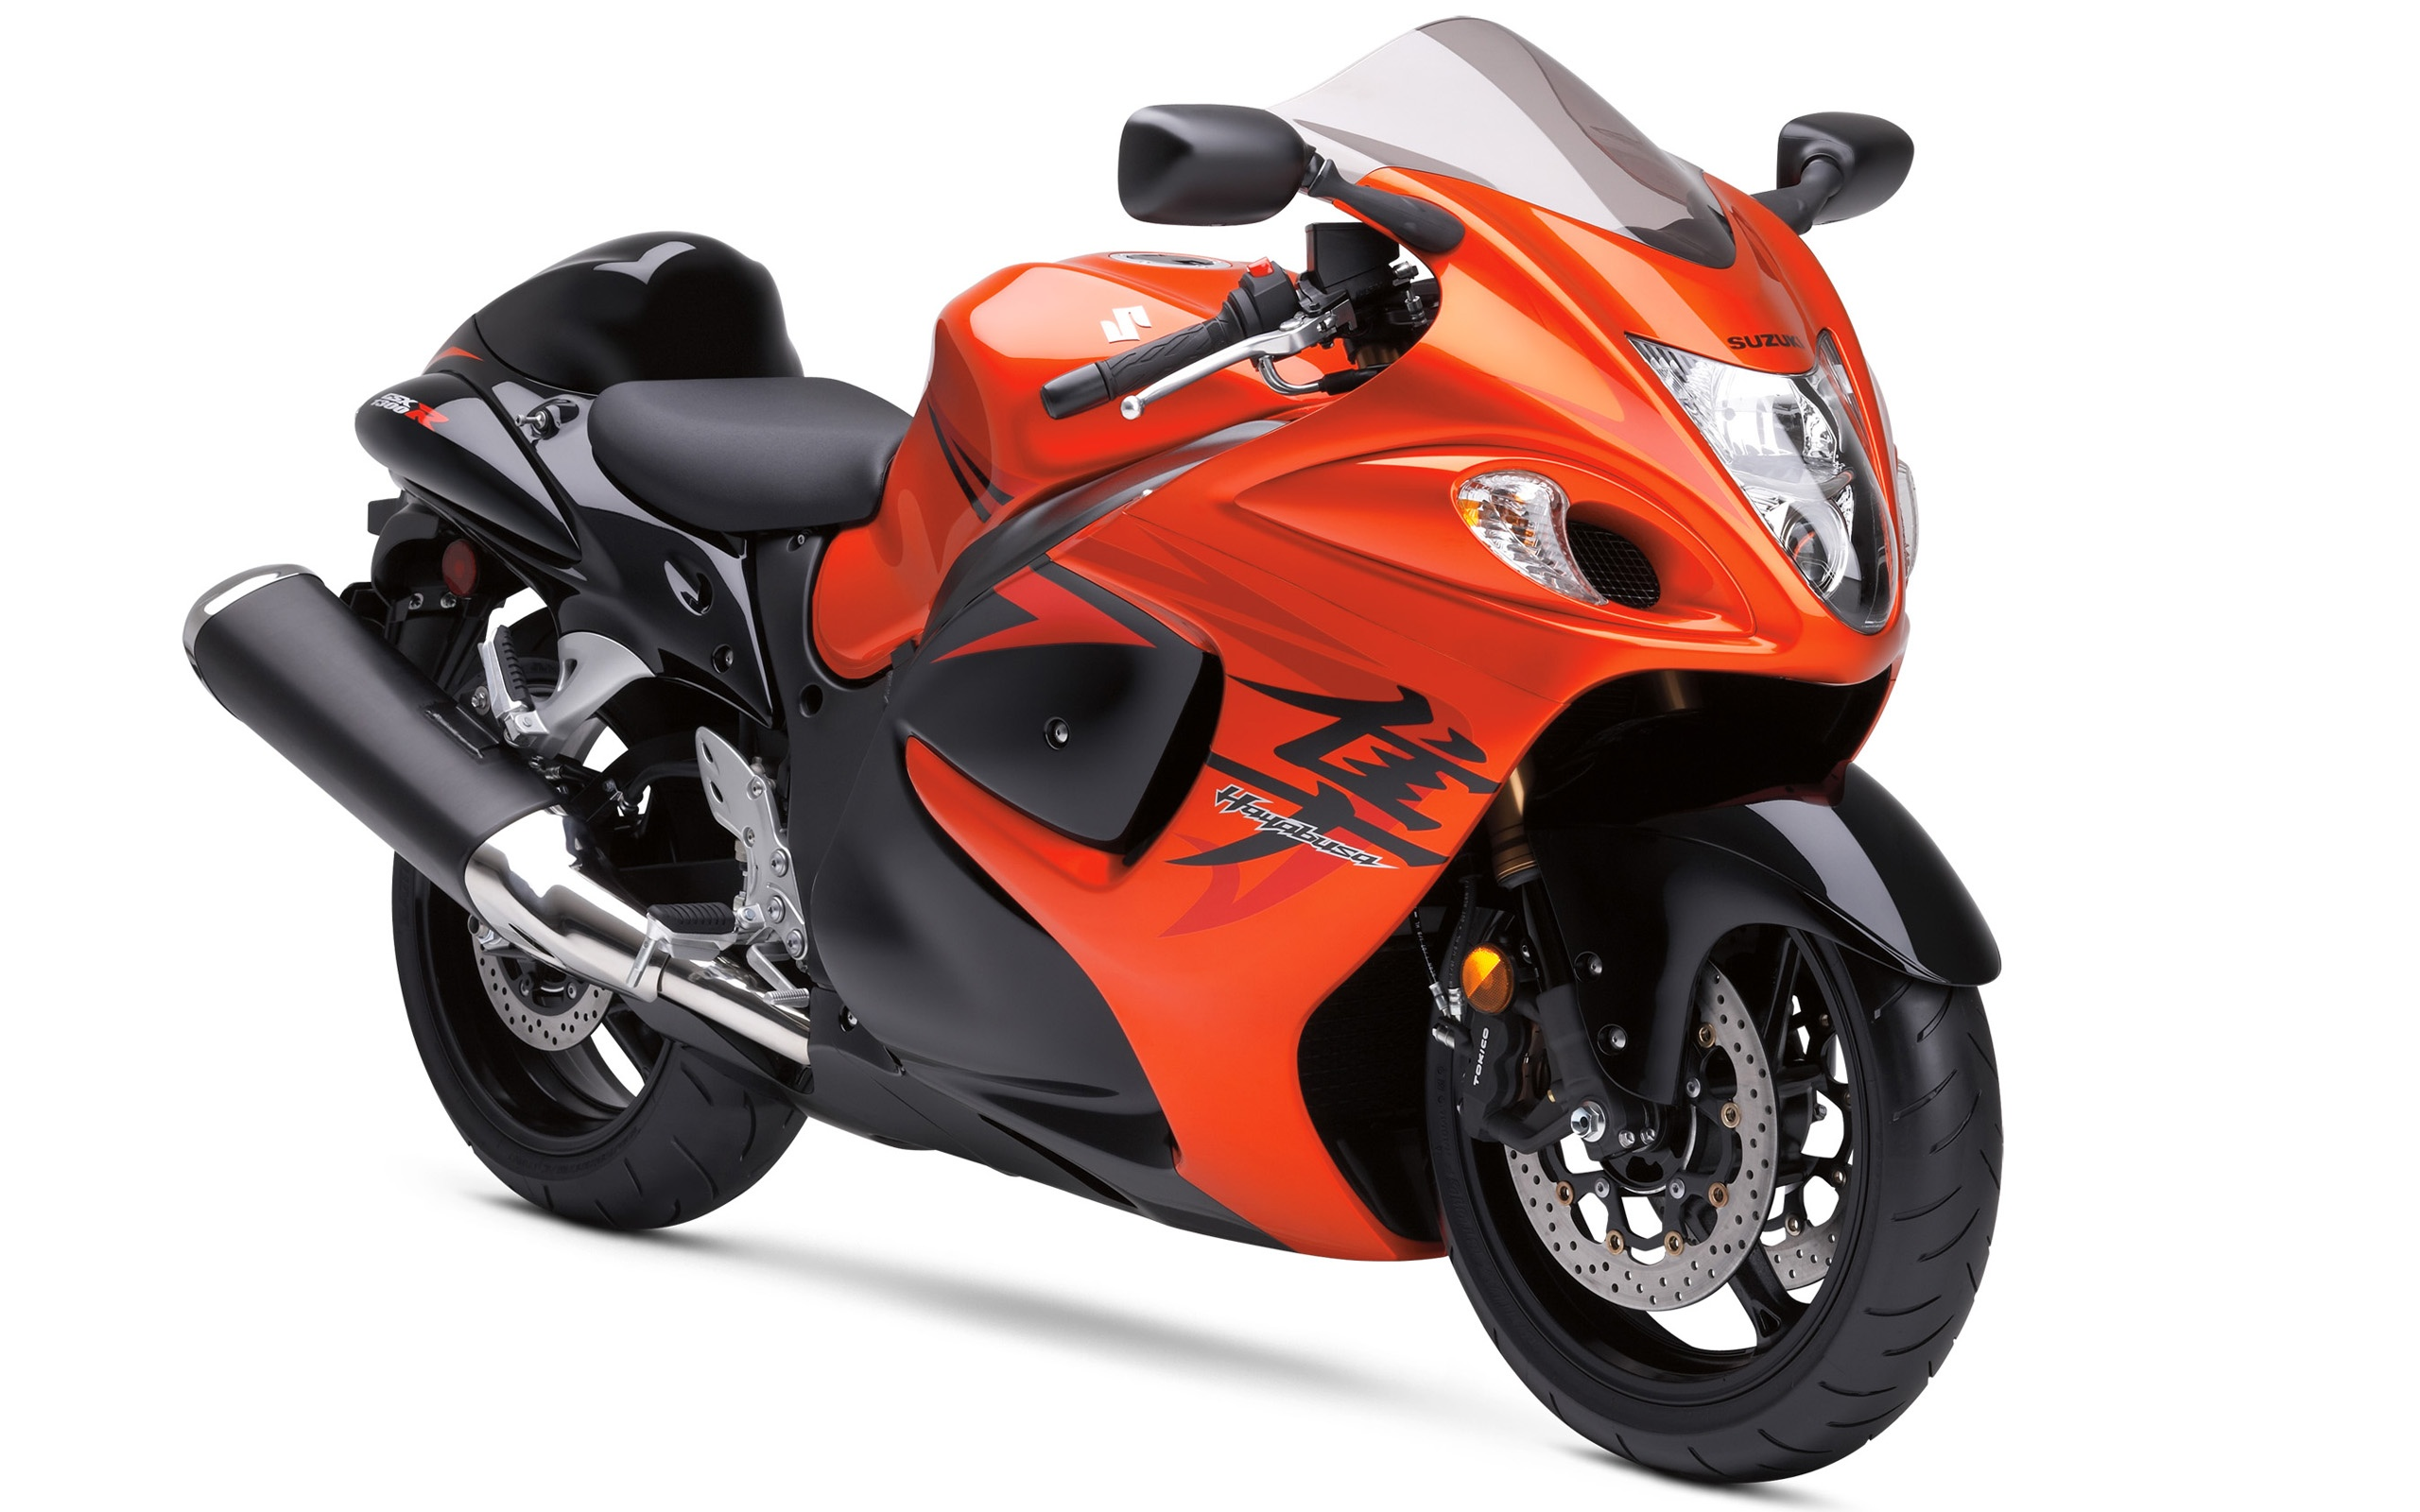 super bikes wallpapers for free download about (350) wallpapers.